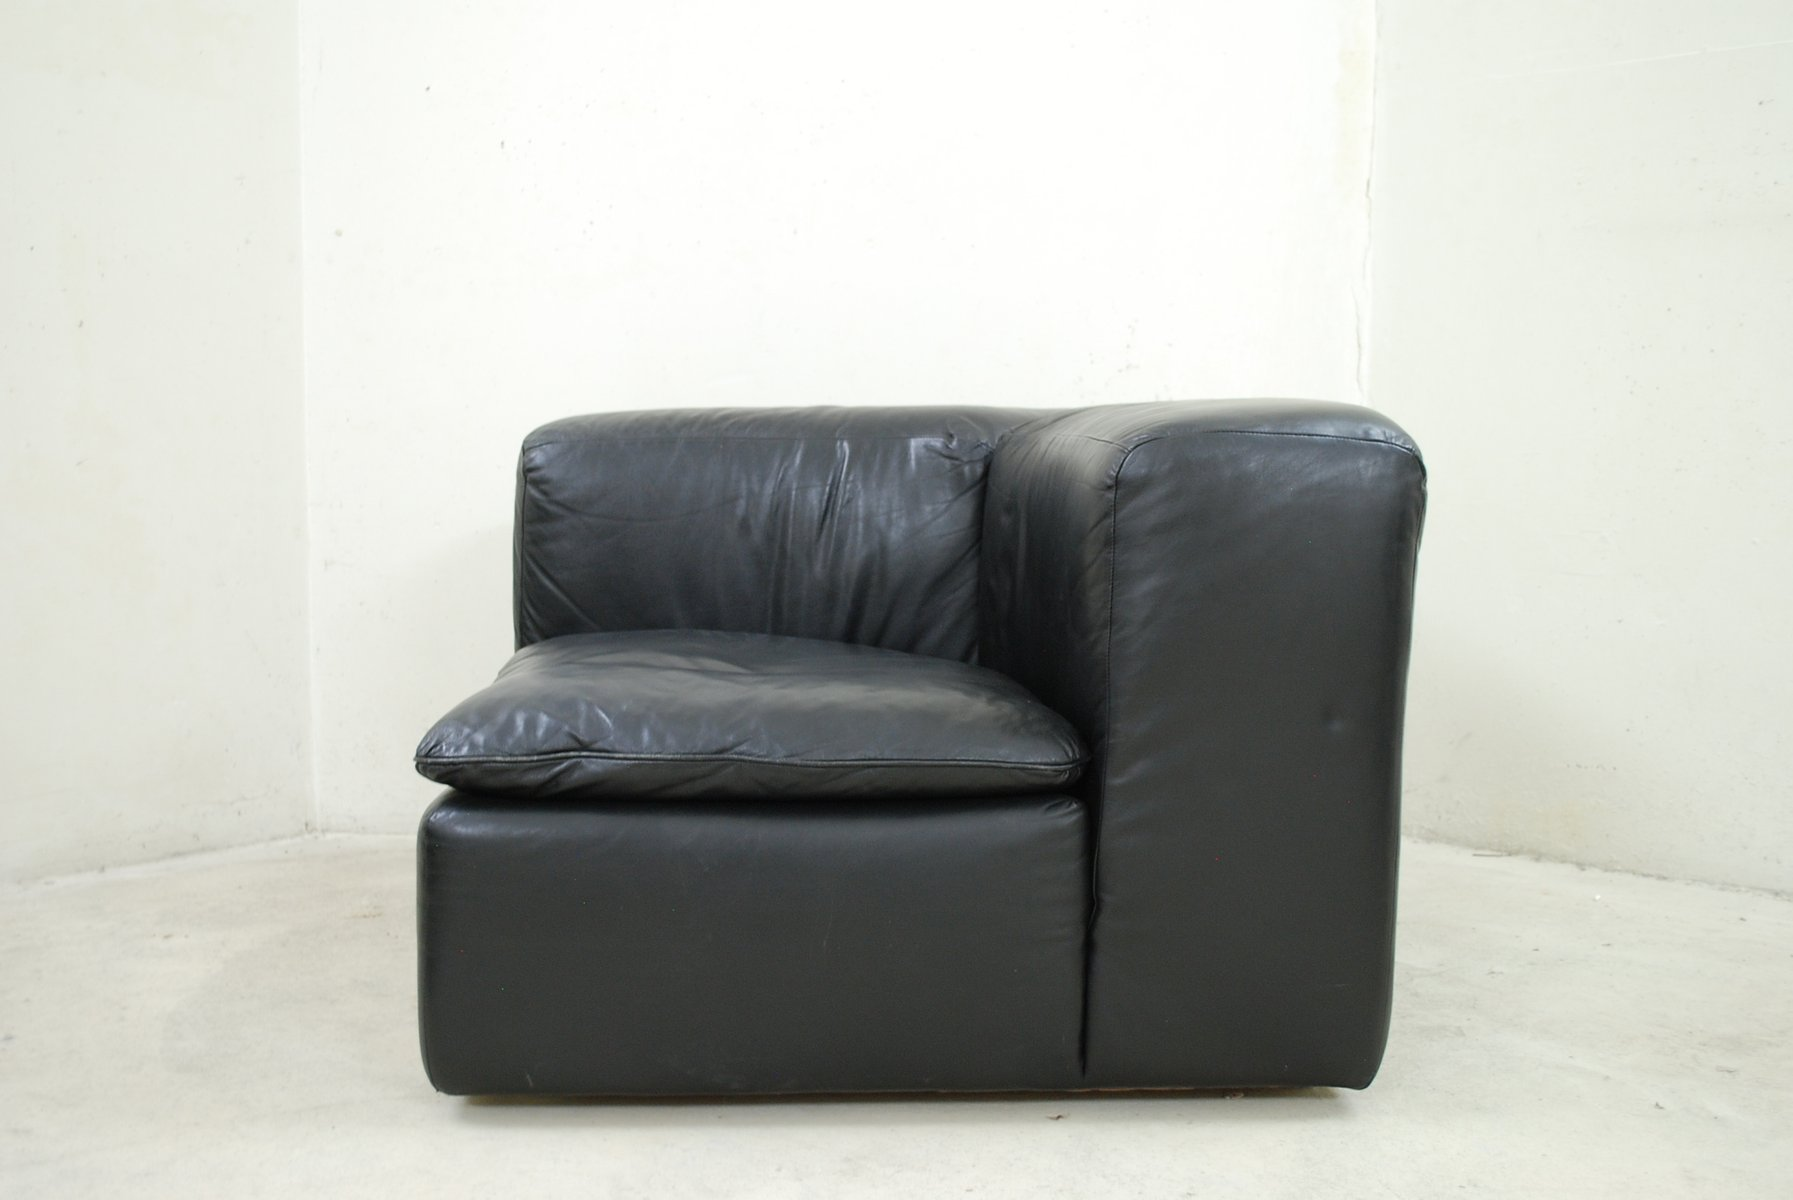 Modular Black Cube Design WK 550 Leather Sofa by Ernst Martin